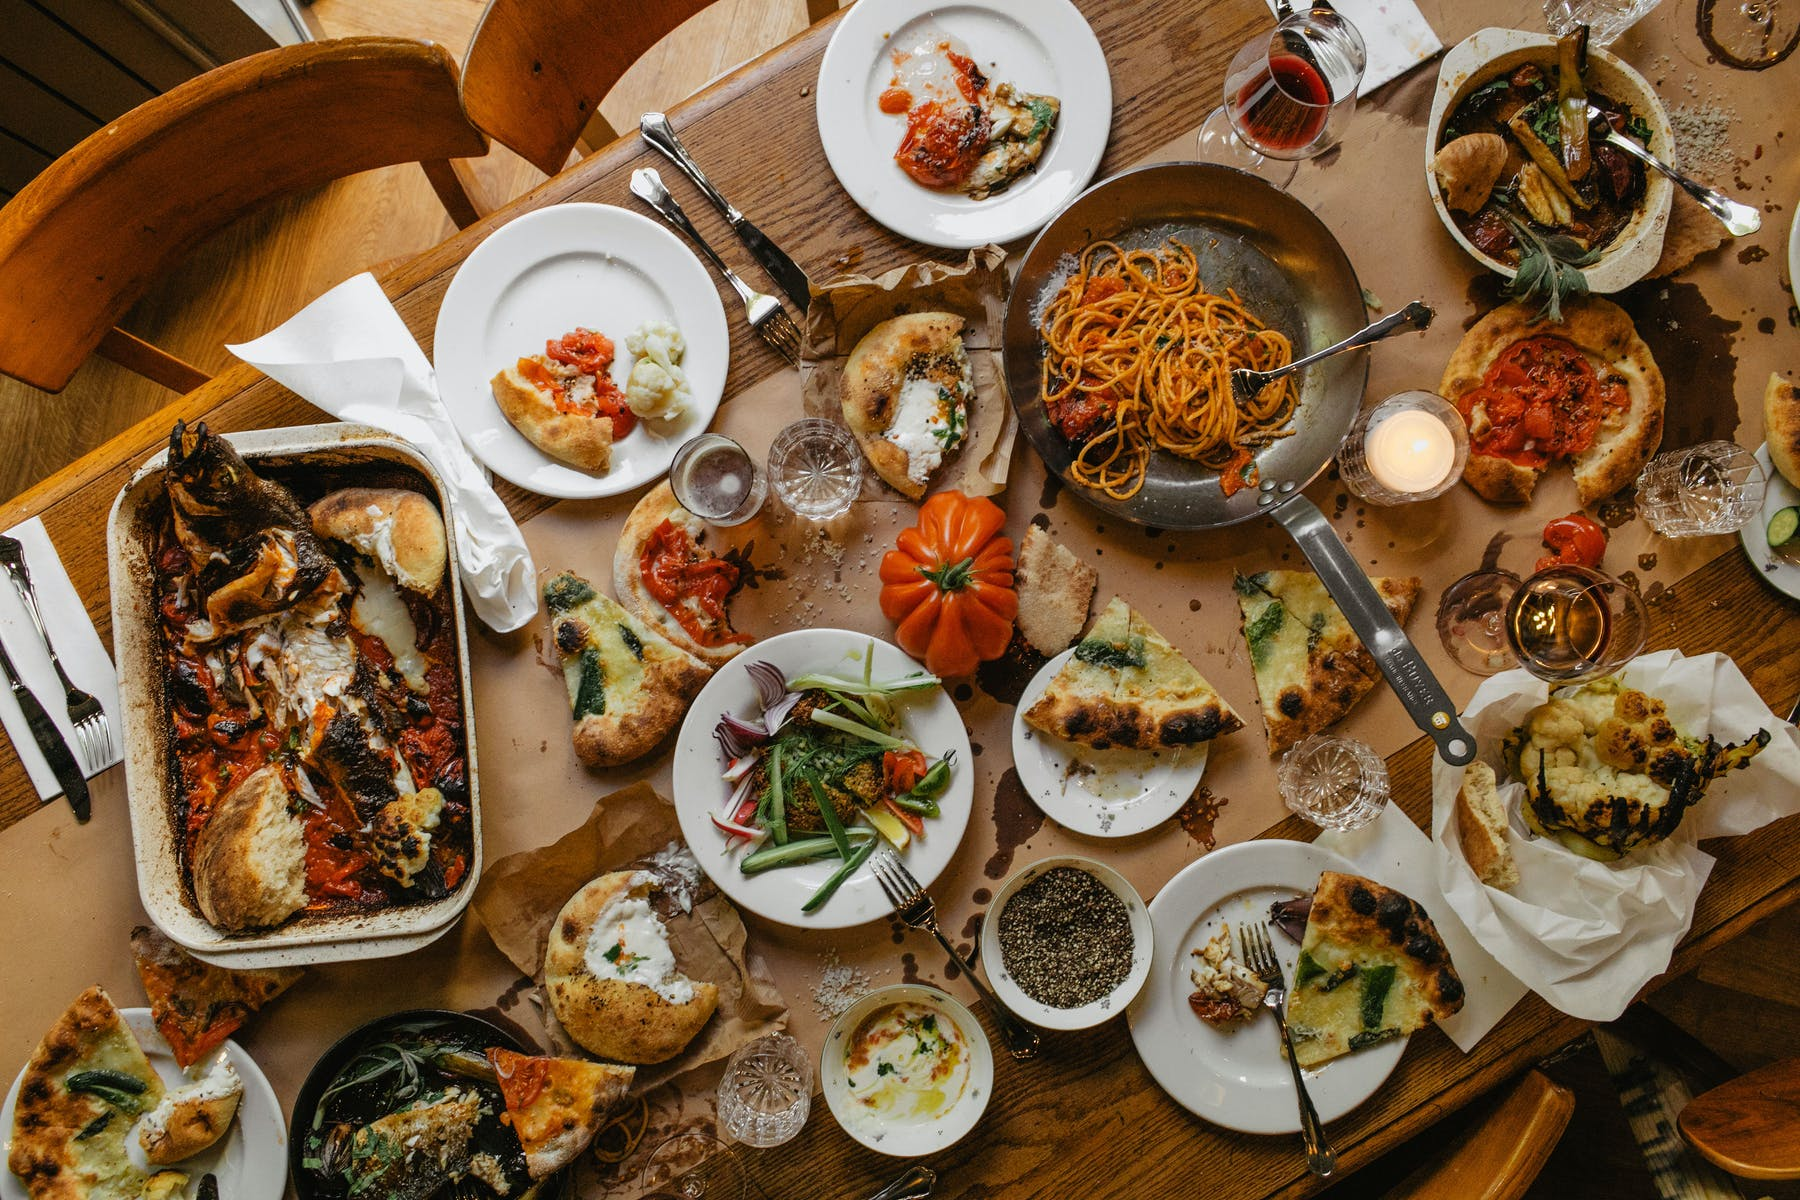 Lots of food to share for large format group dining